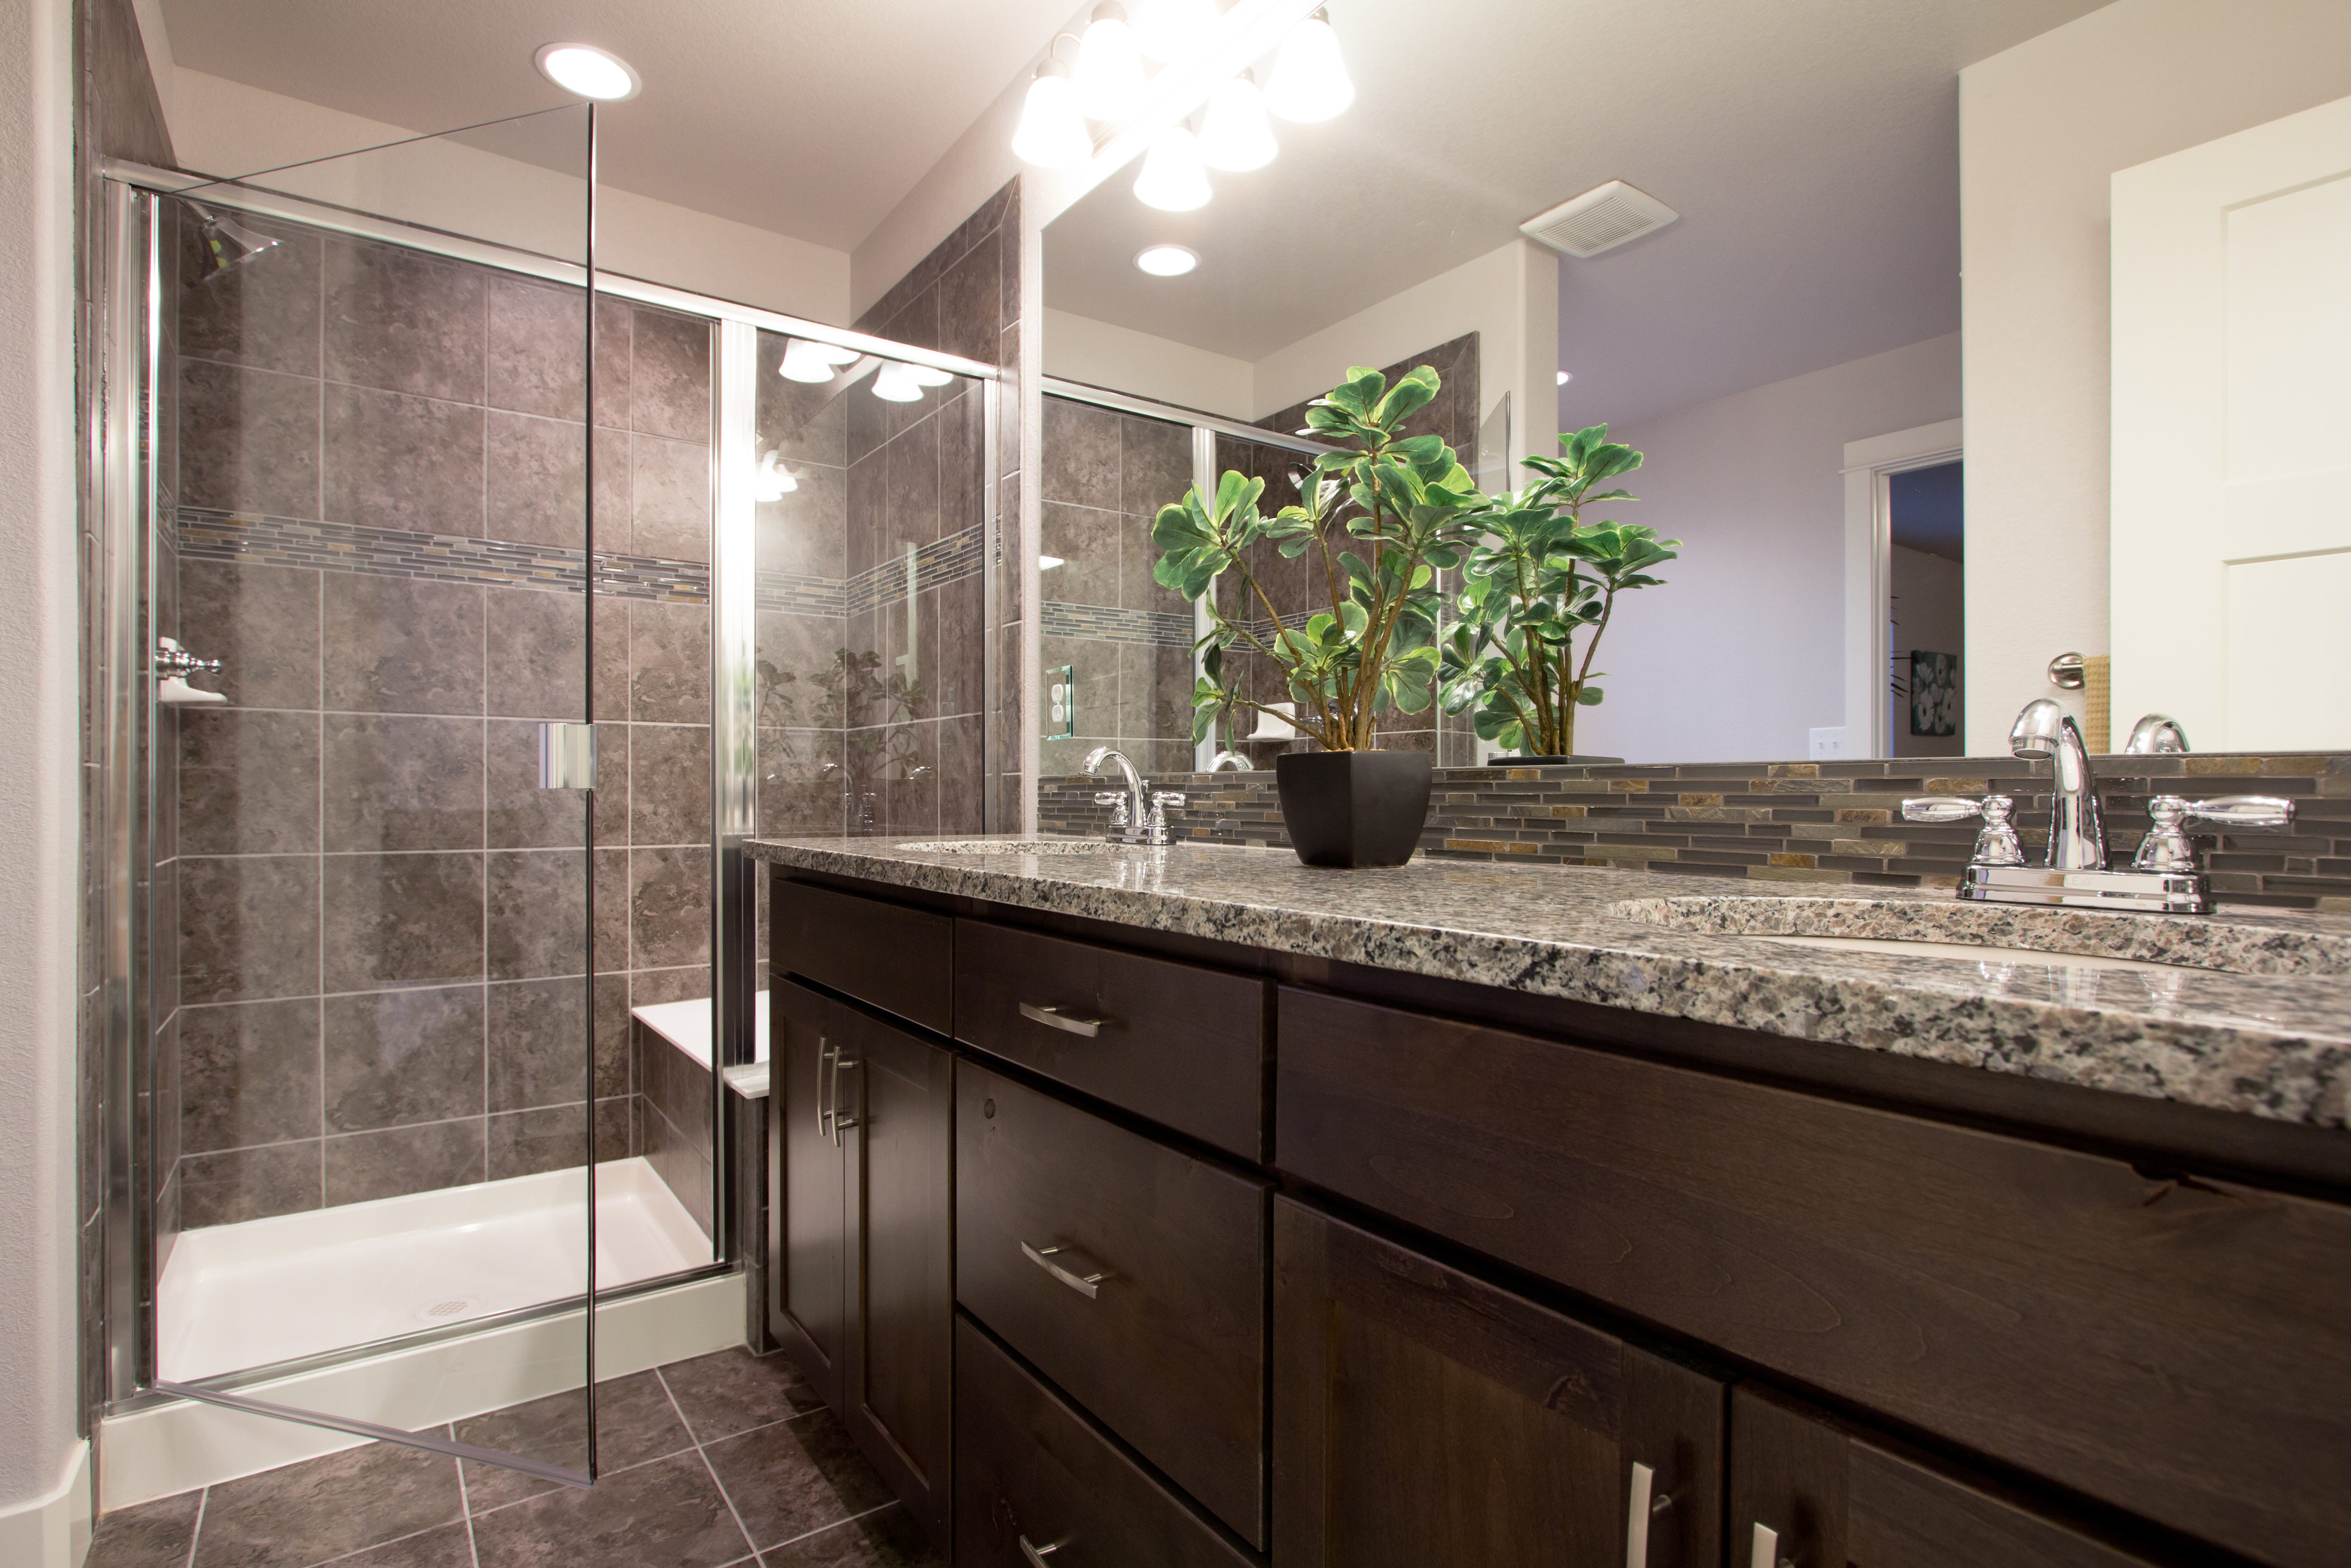 18-montrose-fort_collins-master_bath-new_construction